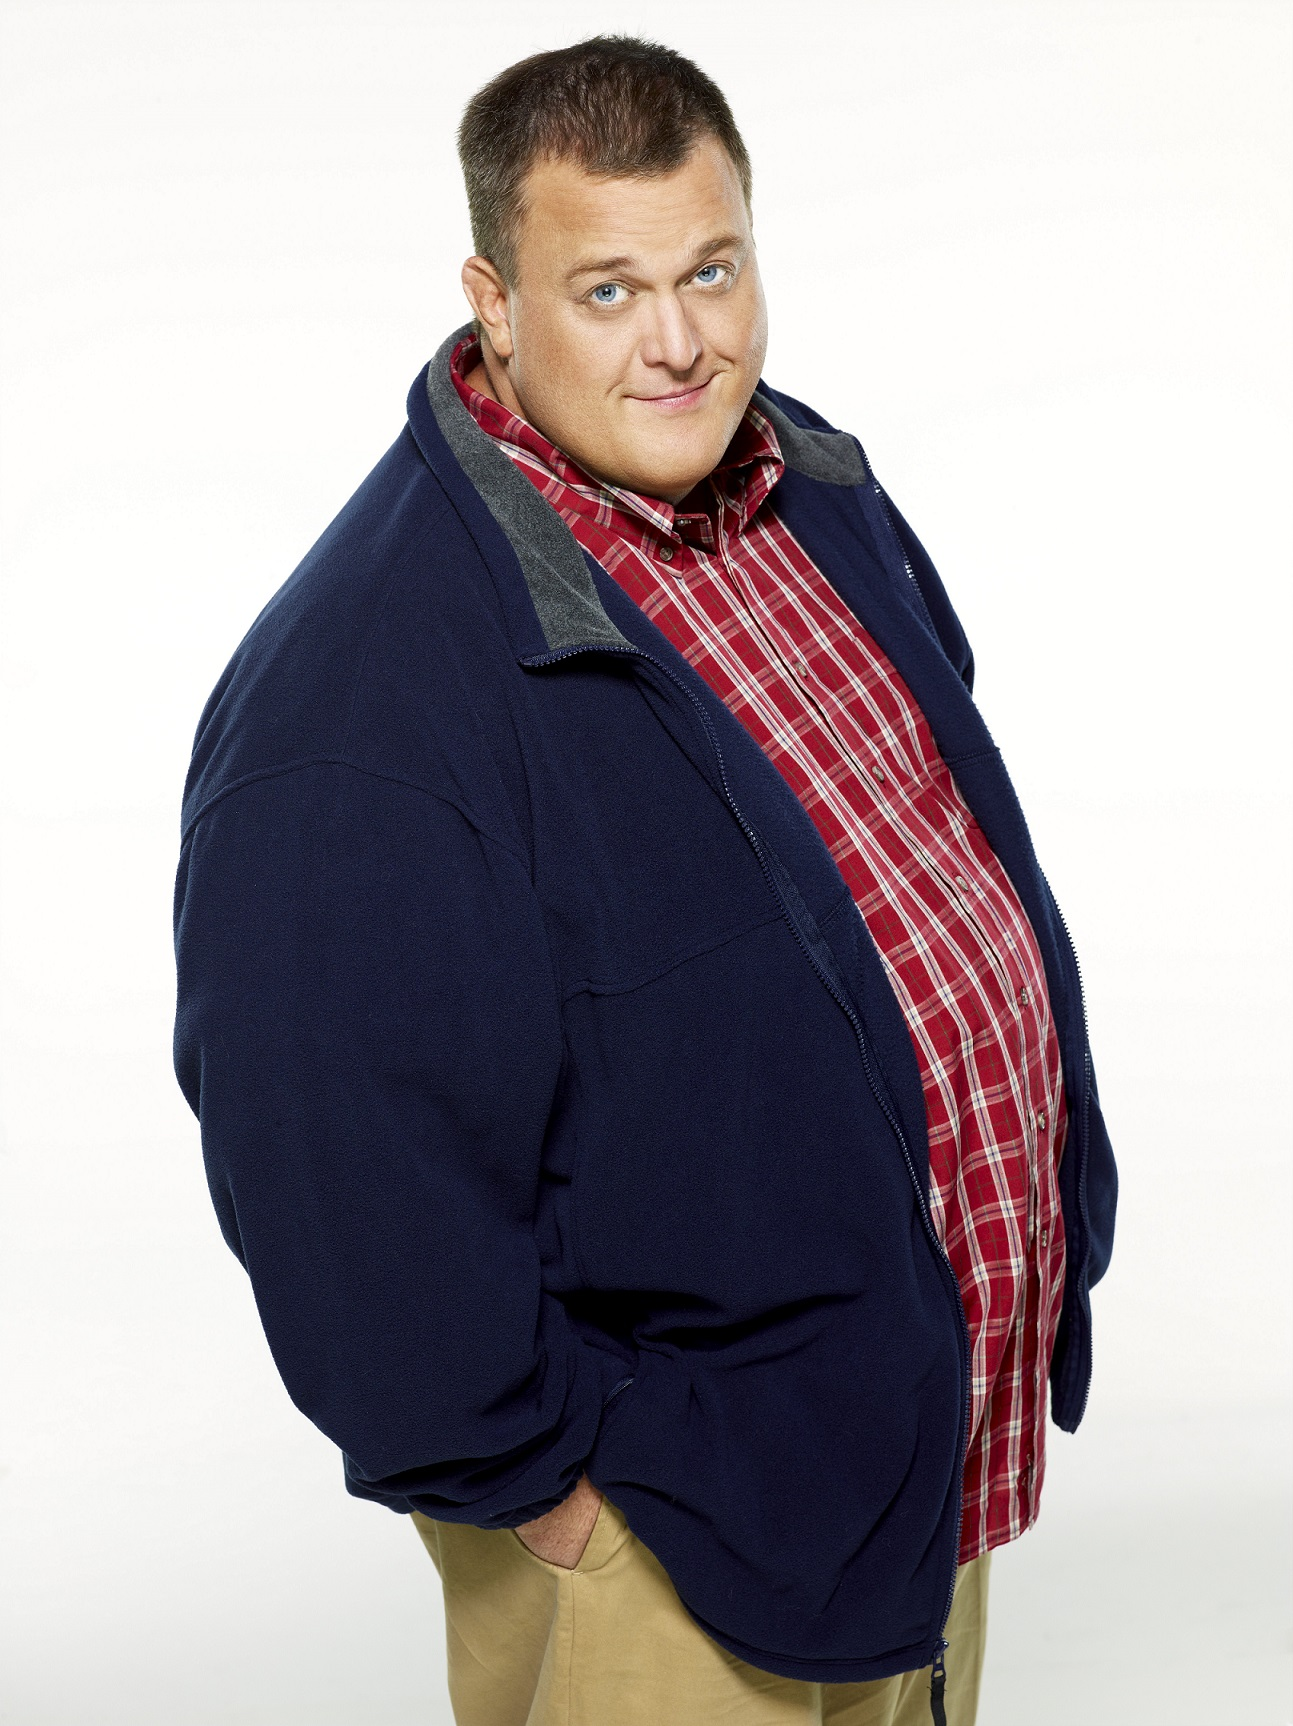 Mike Billy Gardell